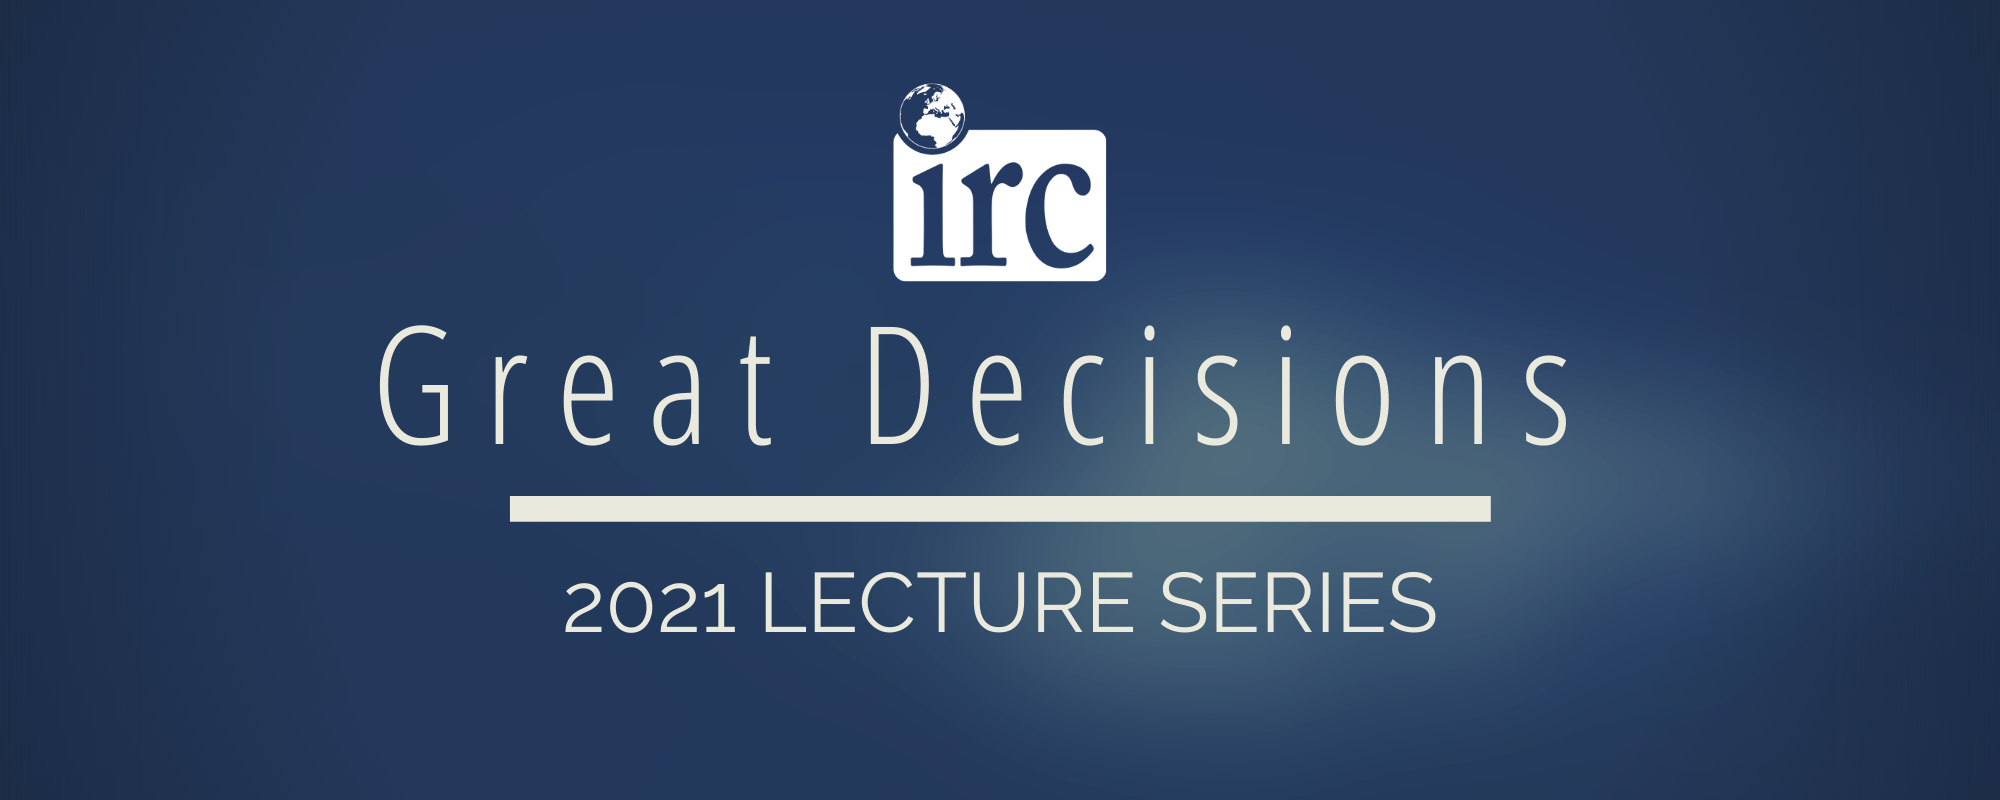 Great Decisions 2021 Lecture Series promotional image